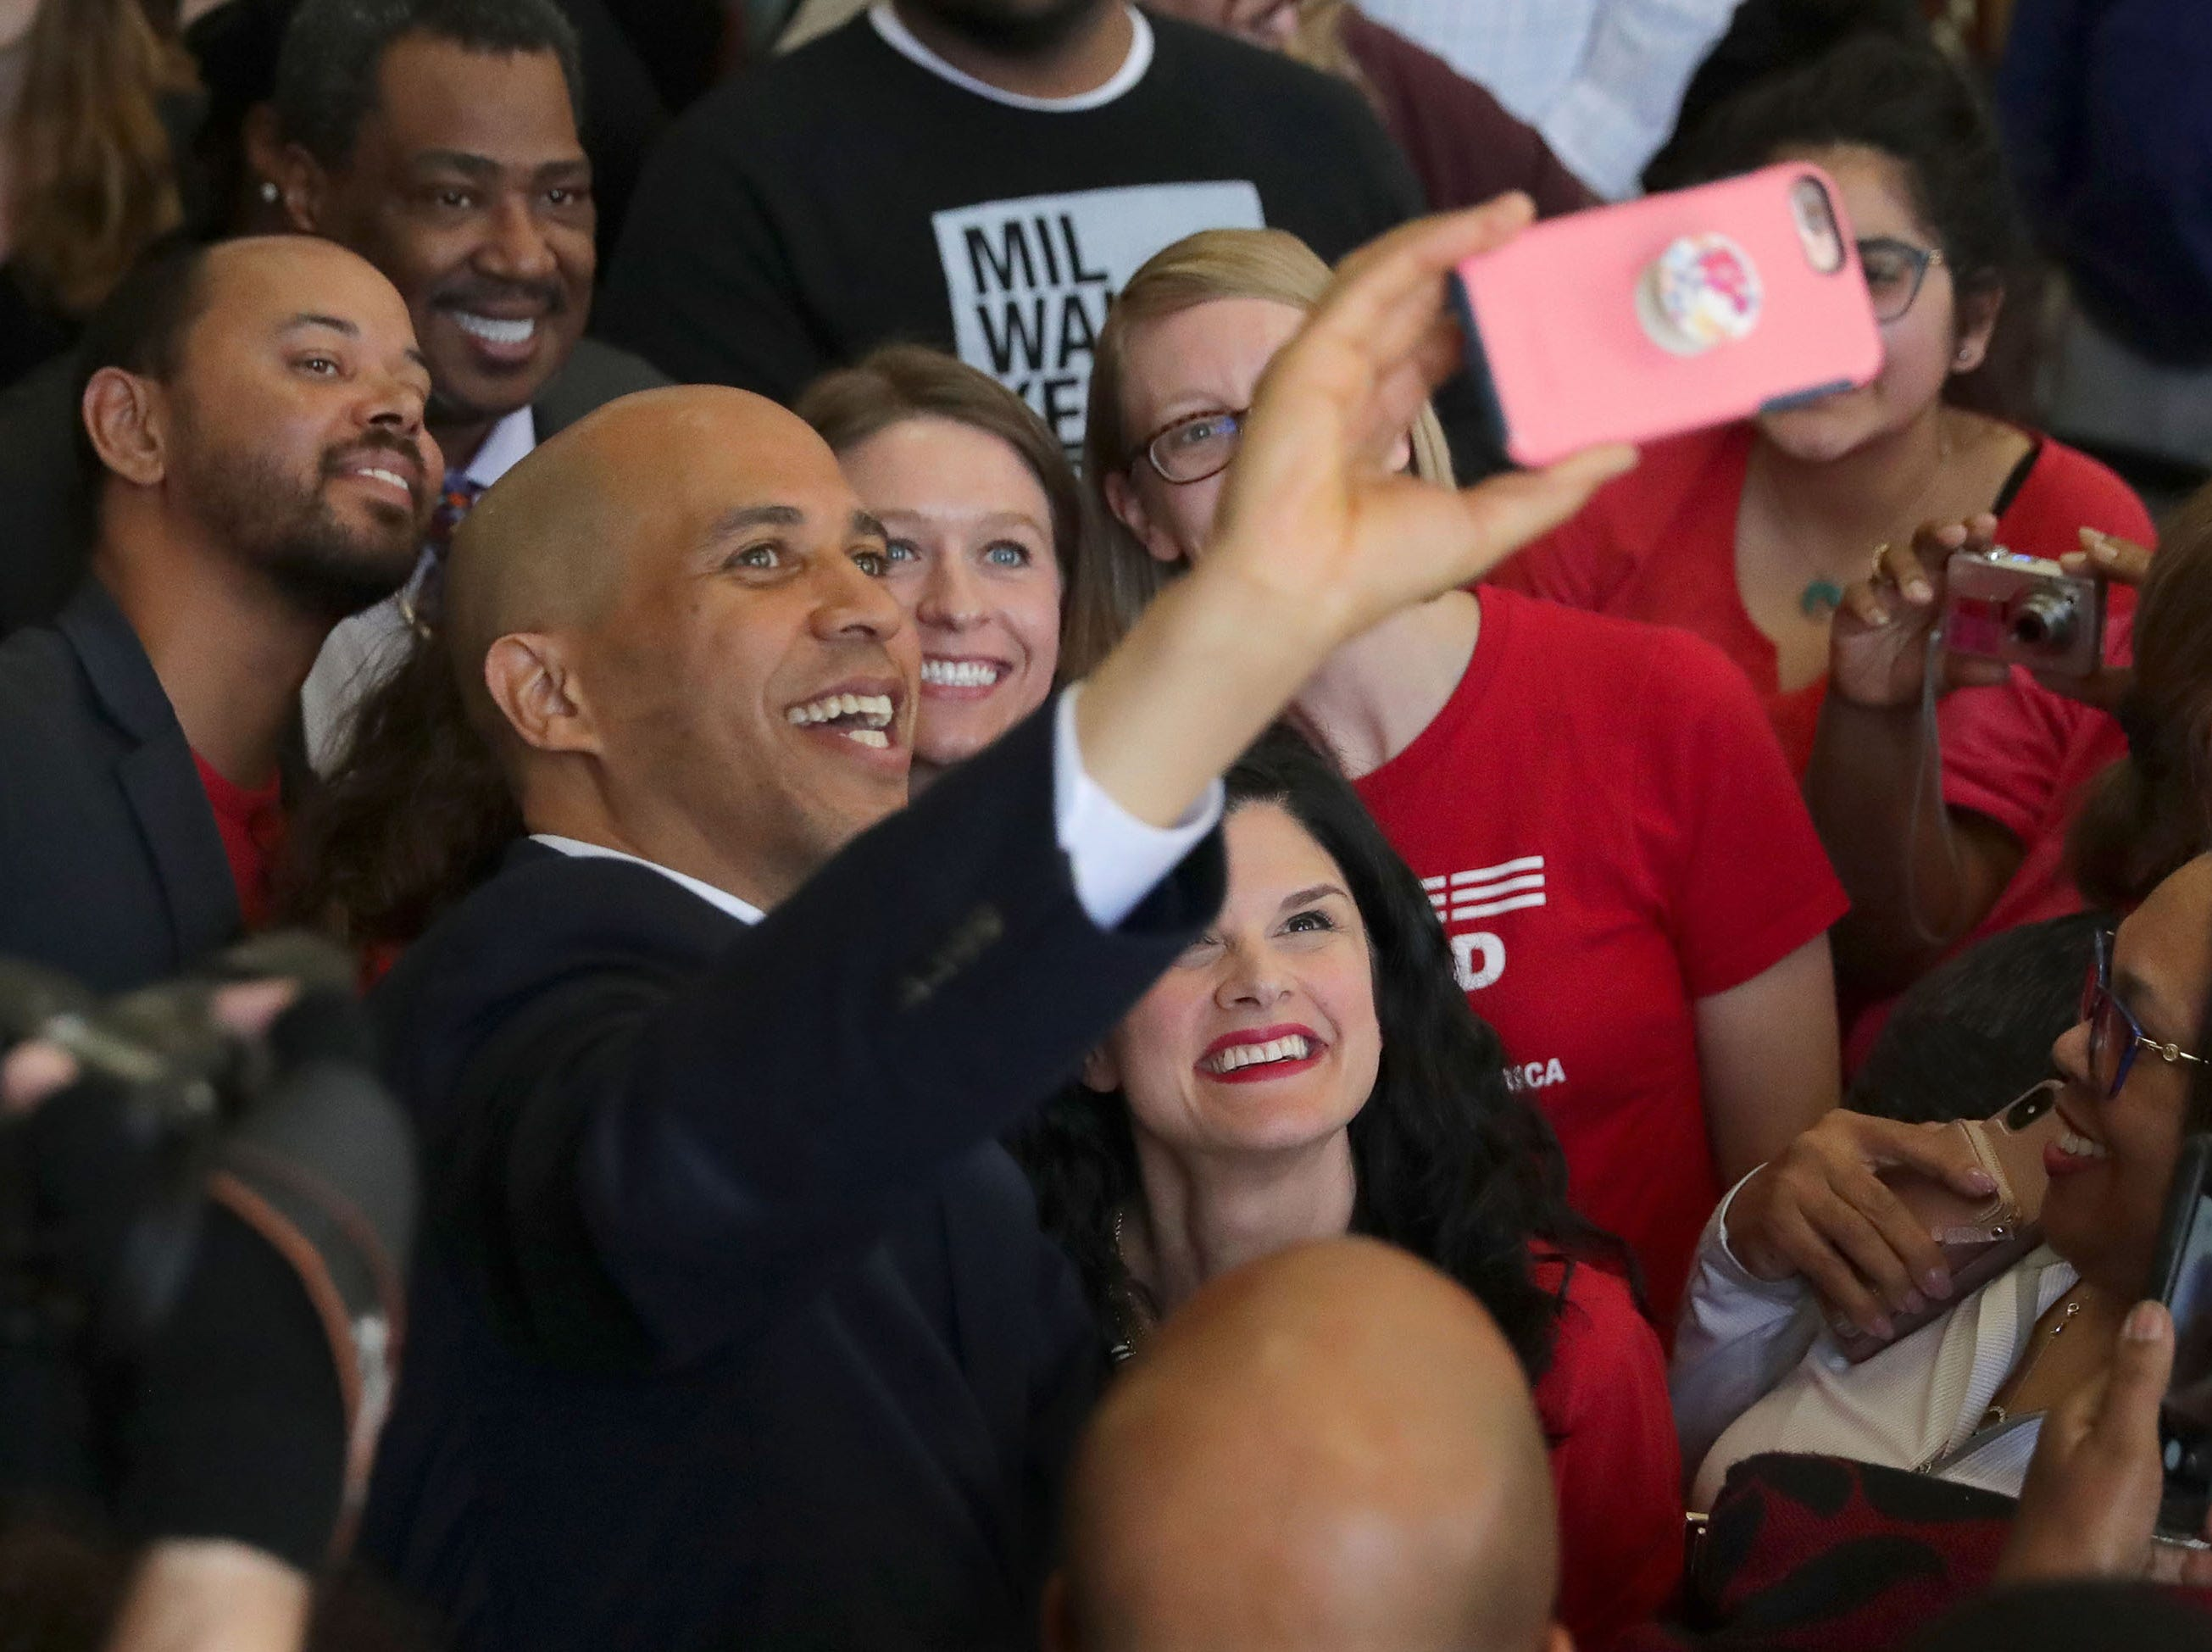 U.S. Sen. Cory Booker takes a selfie with supporters. Booker made a campaign stop at Coffee Makes You Black on North Teutonia Avenue in Milwaukee on Tuesday. Booker, of New Jersey, one of several Democratic presidential contenders to campaign in Wisconsin, held a discussion on gun violence prevention.